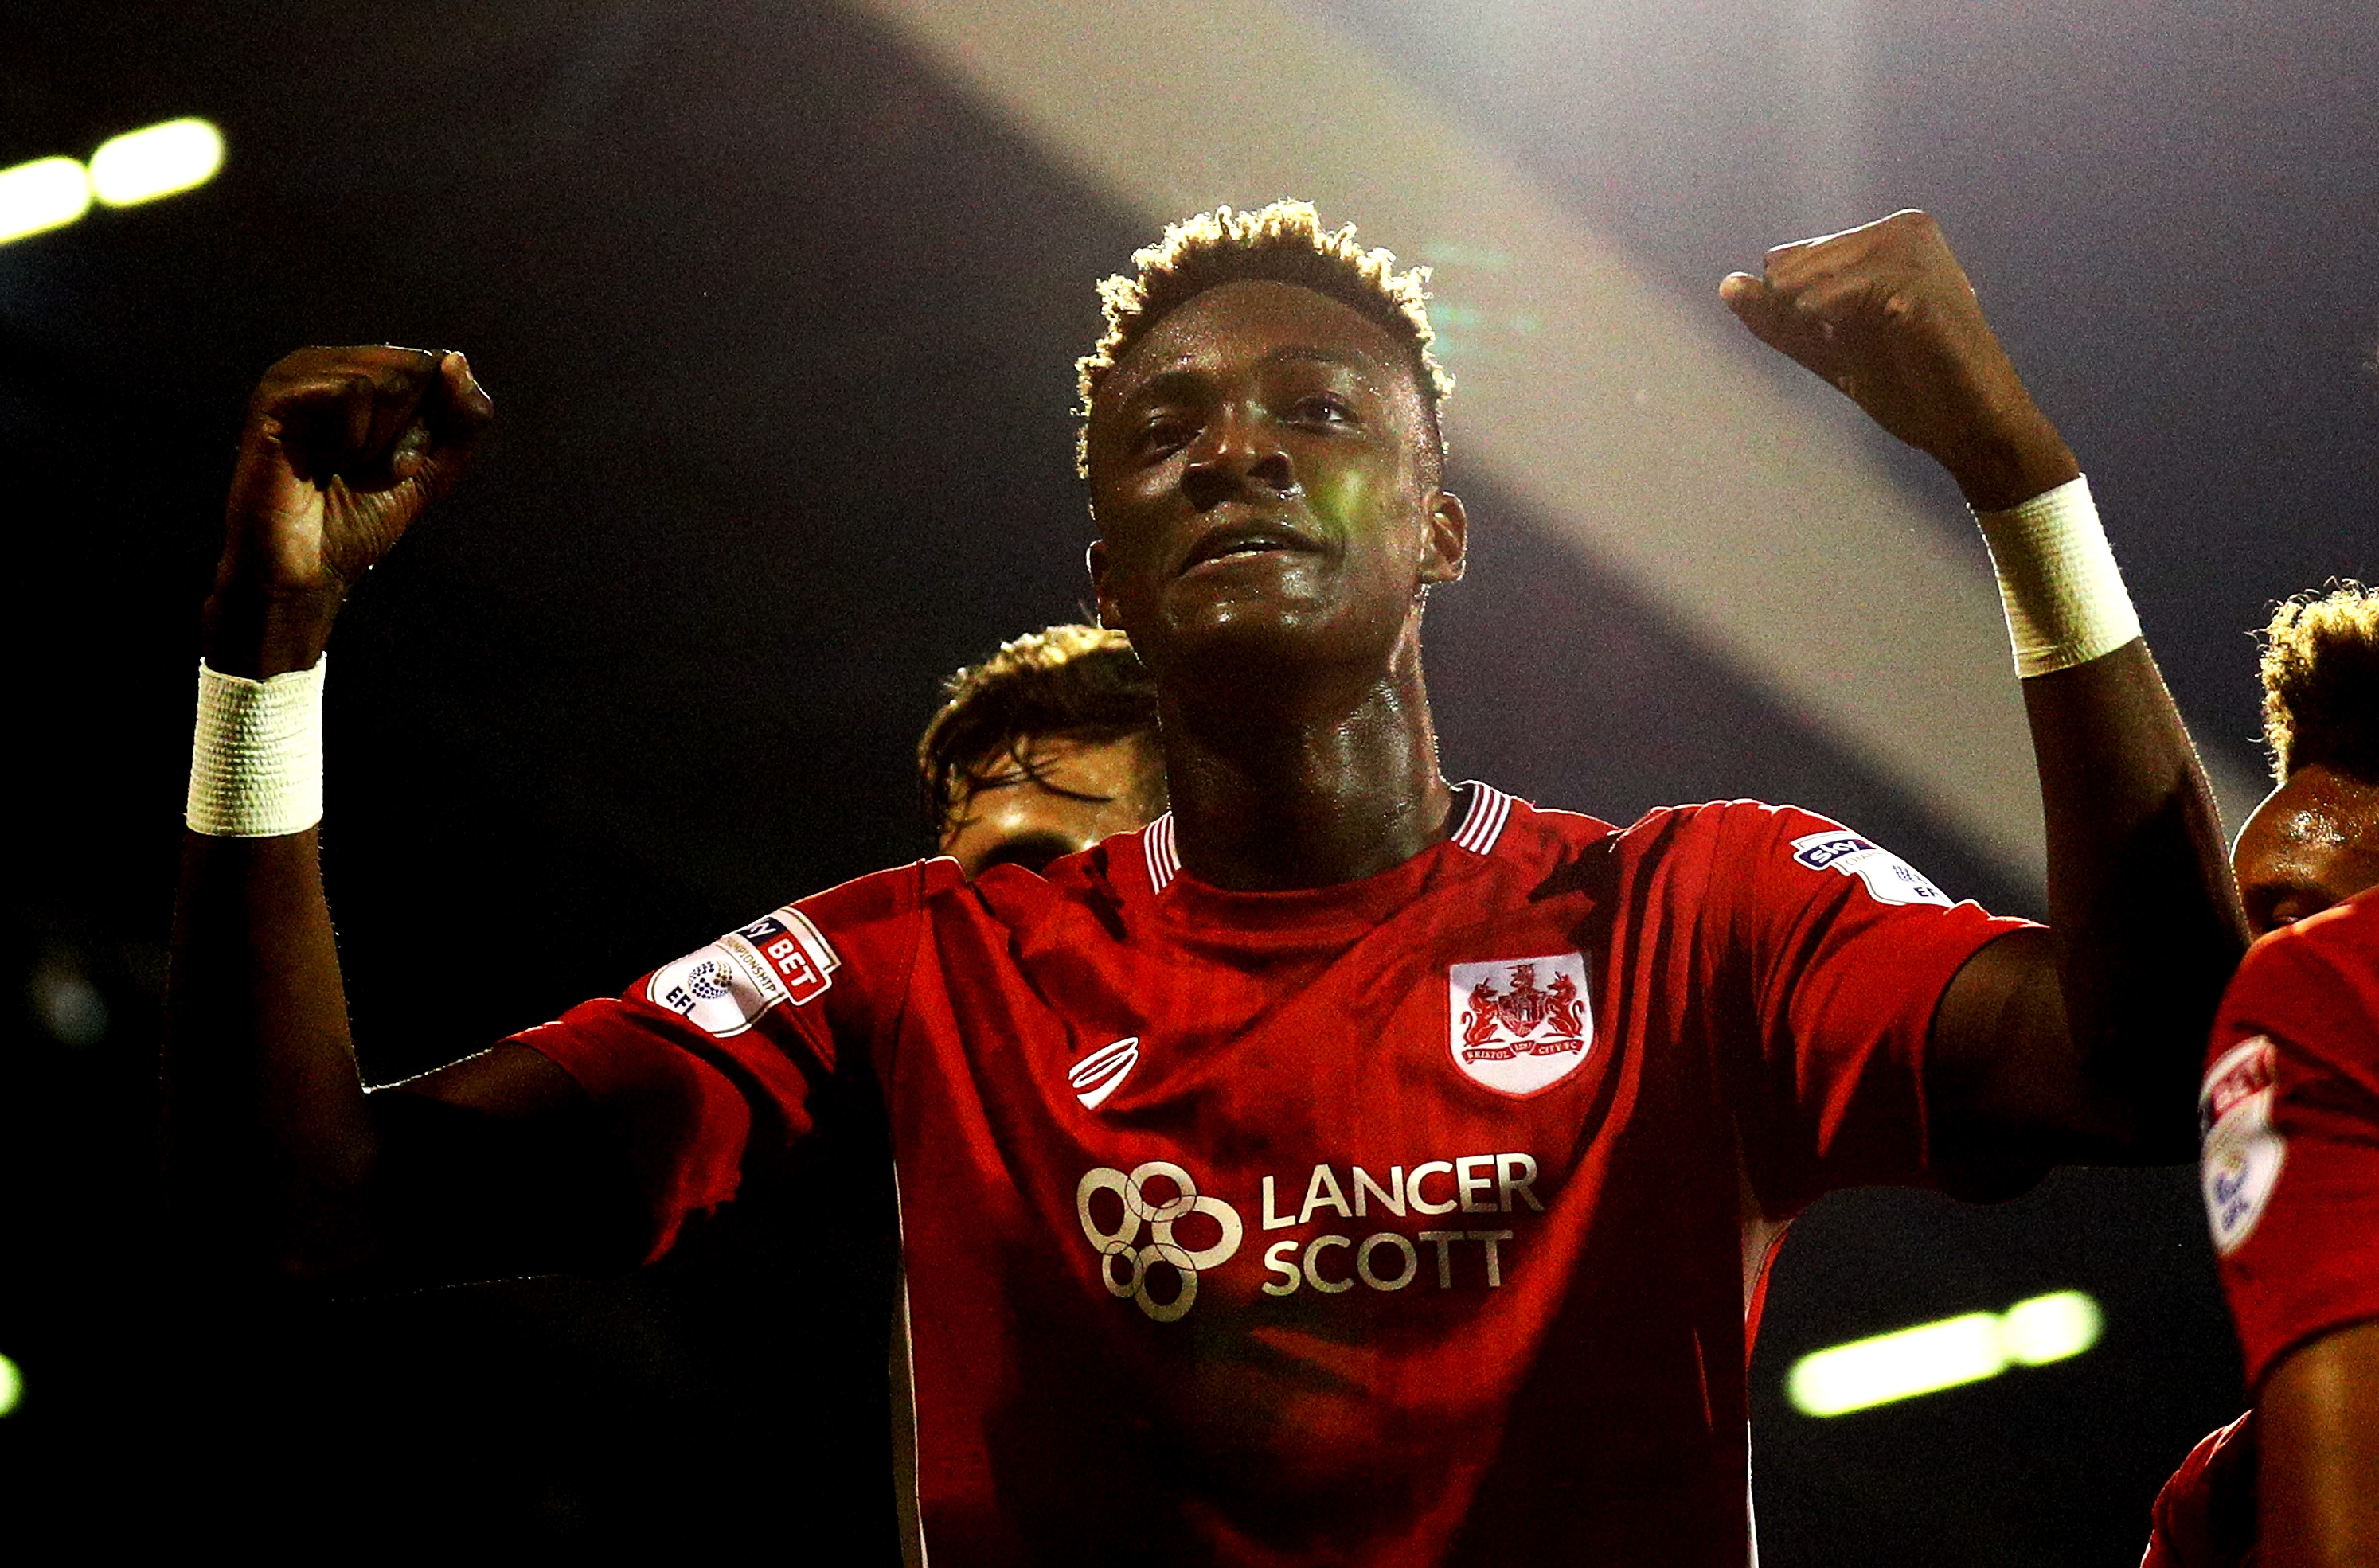 LONDON, ENGLAND - SEPTEMBER 21: Tammy Abraham of Bristol City celebrates scoring his sides second goal during the EFL Cup Third Round match between Fulham and Bristol City at Craven Cottage on September 21, 2016 in London, England. (Photo by Paul Gilham/Getty Images)